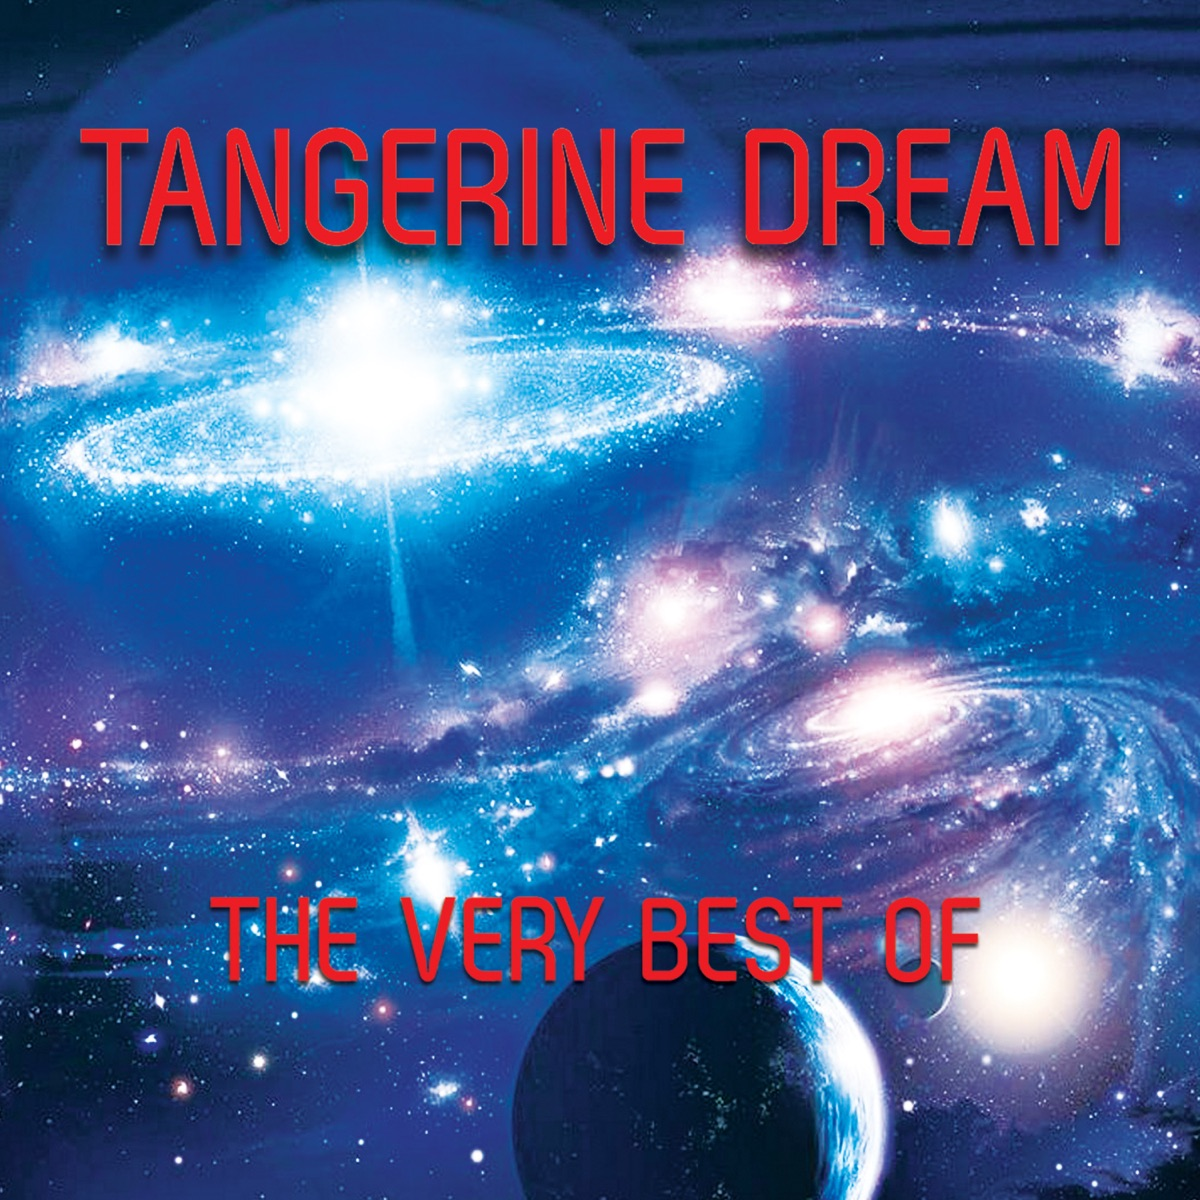 The Very Best of Tangerine Dream Album Cover by Tangerine Dream